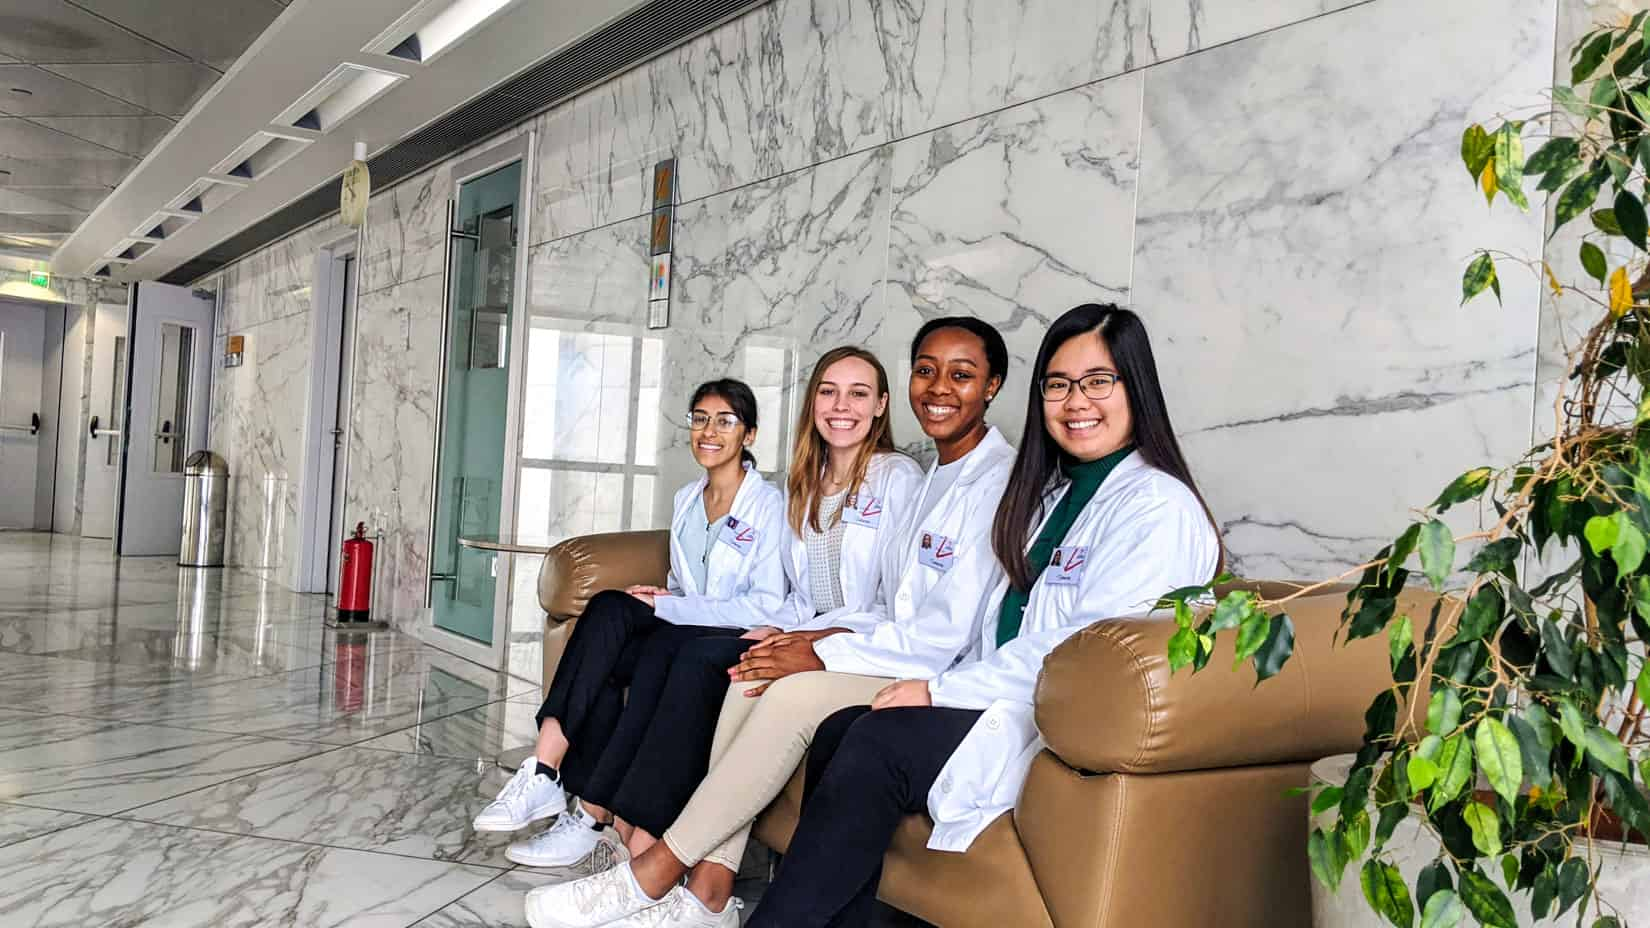 Students sitting in a hospital ready for shadowing.